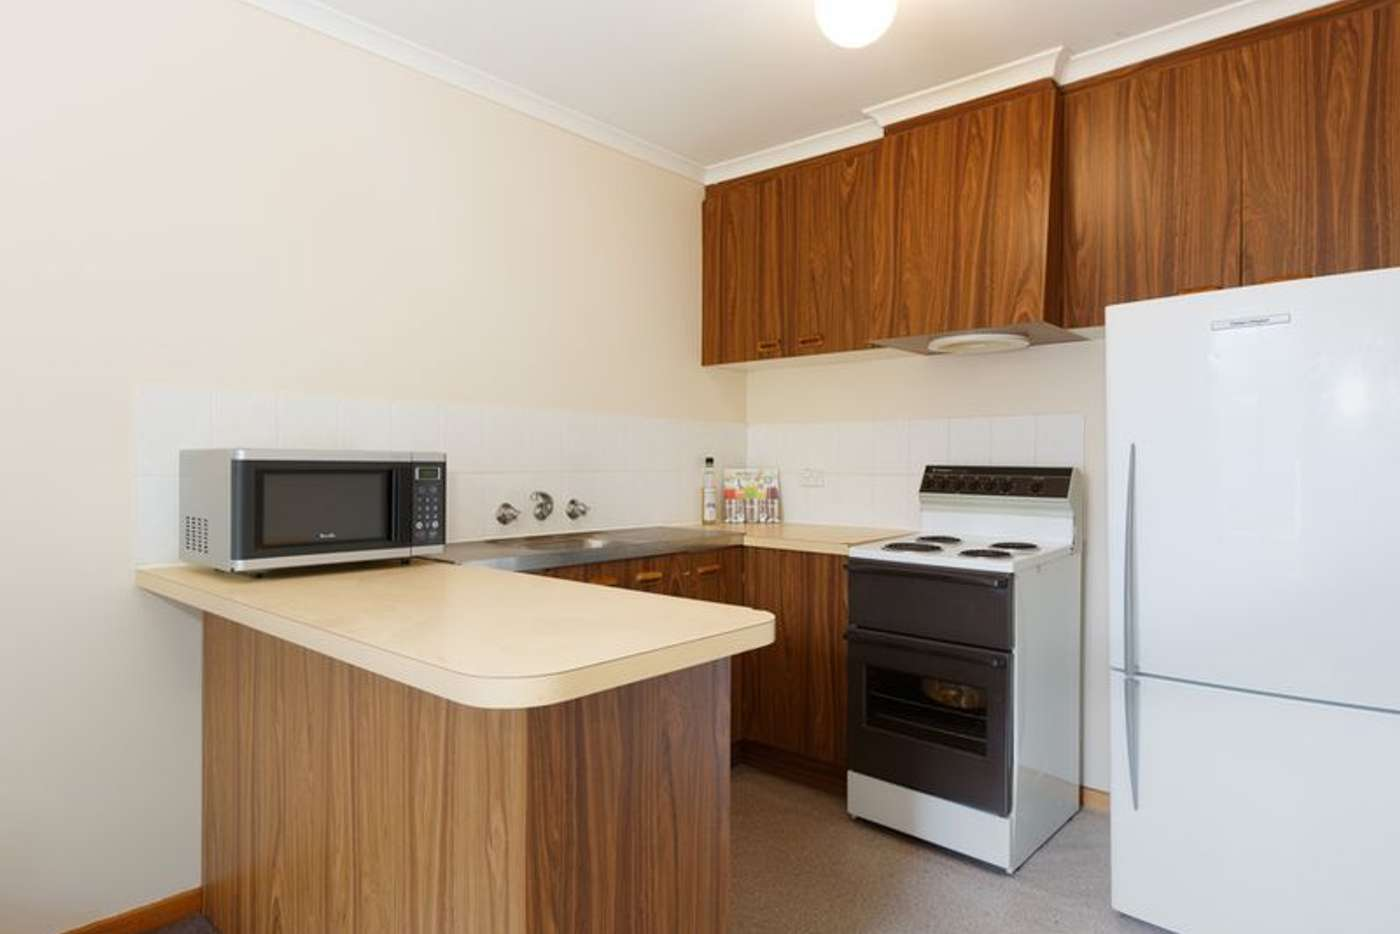 Fifth view of Homely unit listing, 3/6 Atherton Avenue, West Moonah TAS 7009